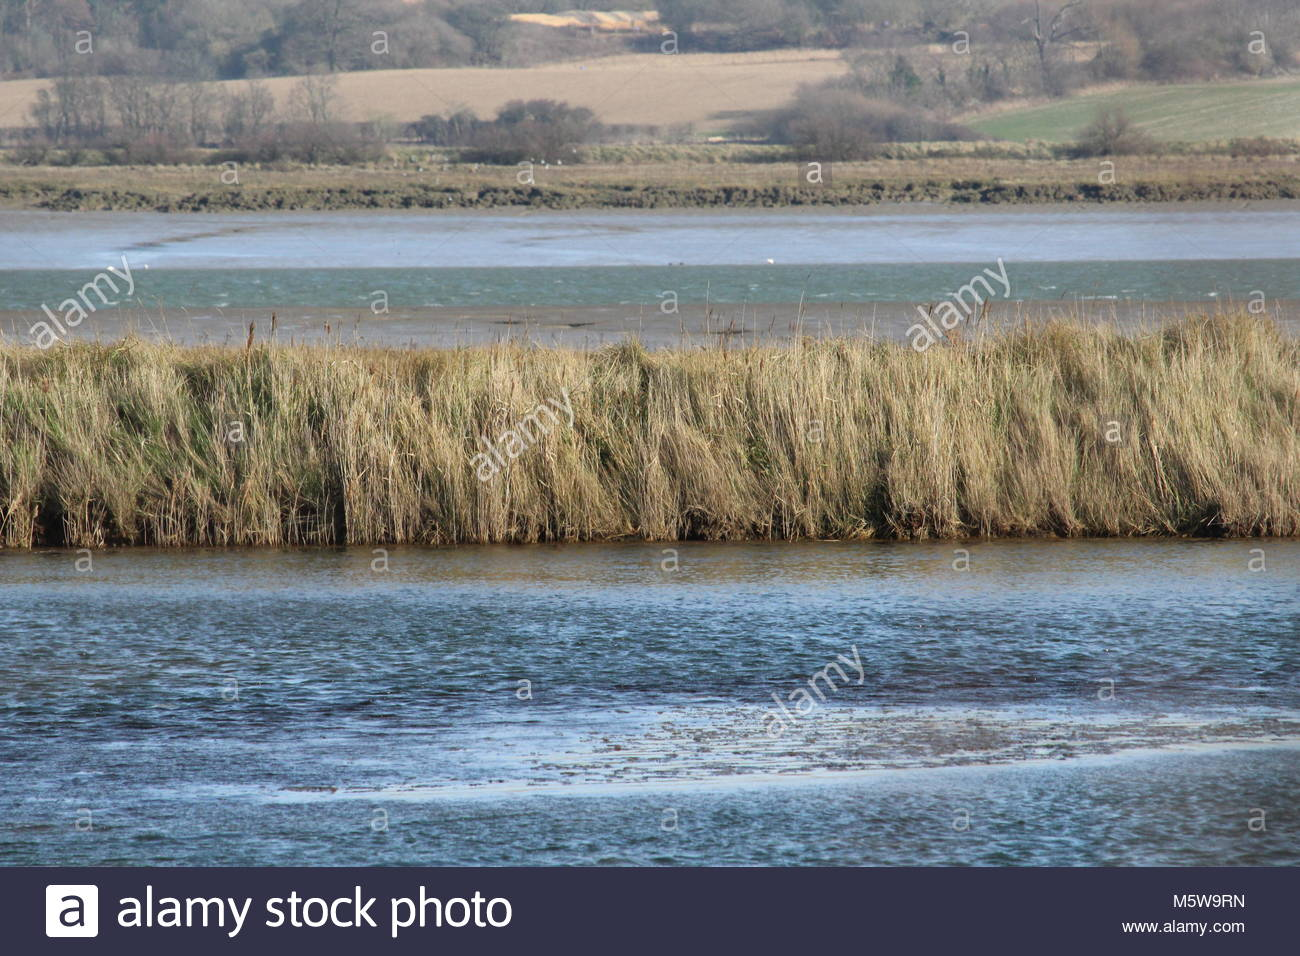 Landscape towards Brightlingsea overlooking Colne Estuary, Colchester in Essex - Stock Image